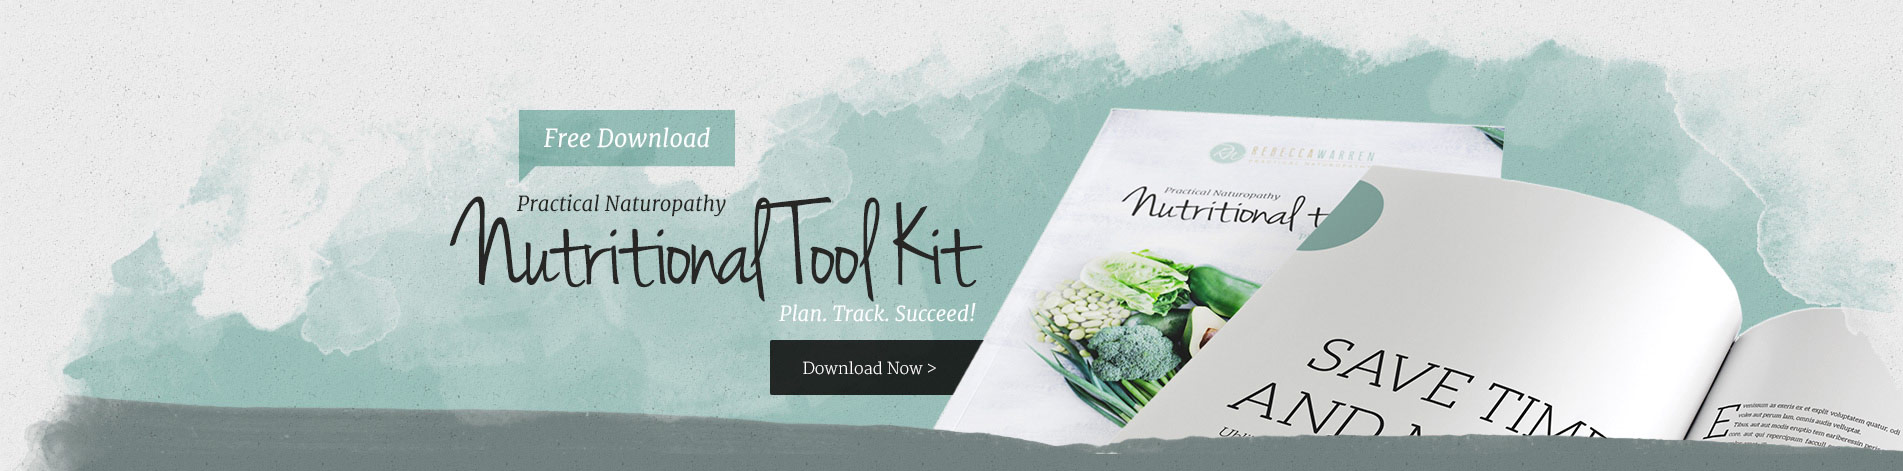 Download nutritional tool kit